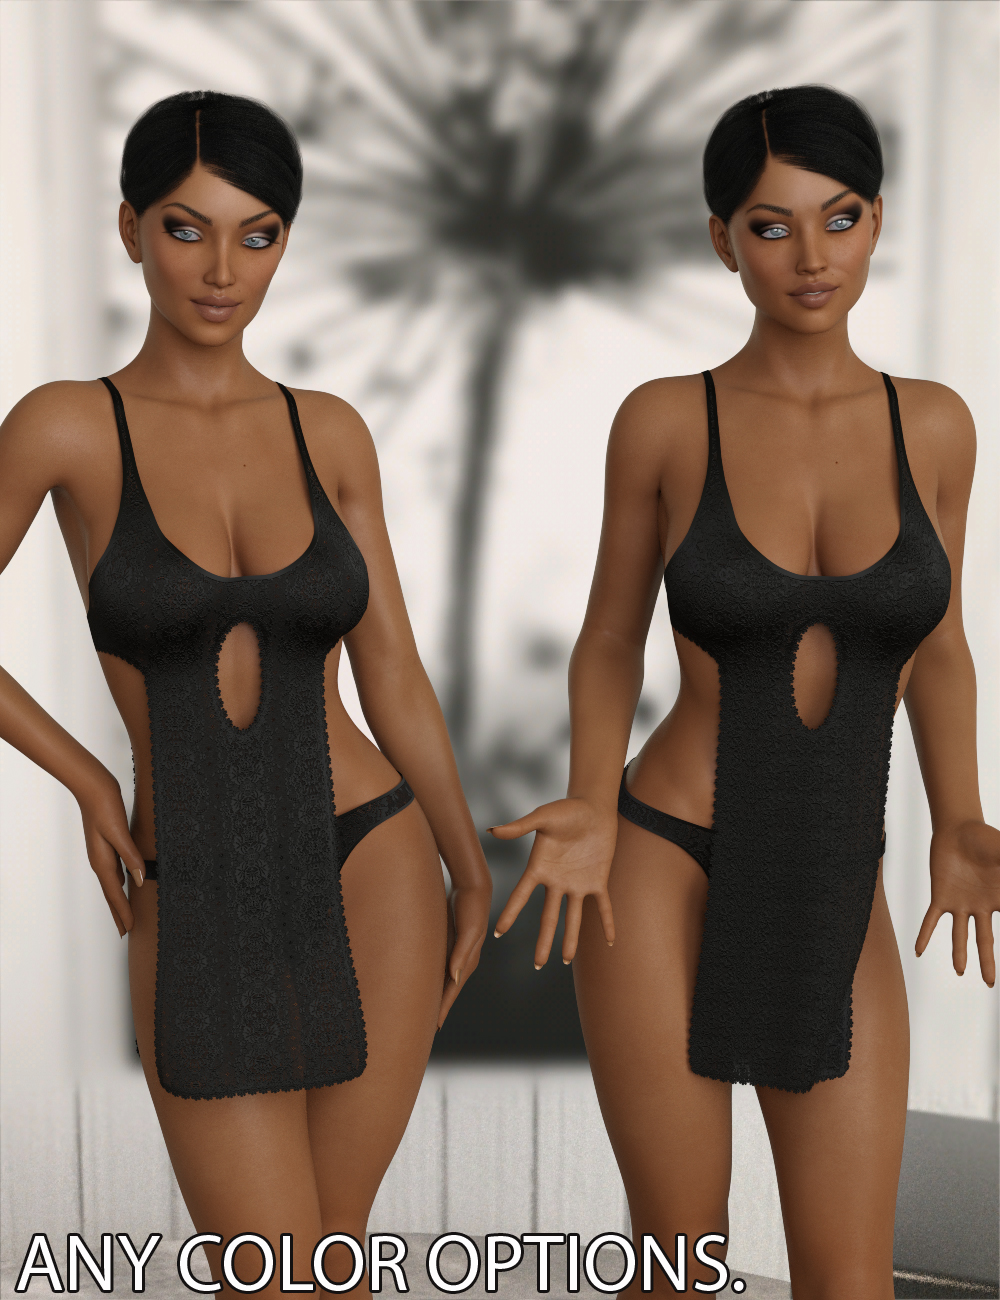 InStyle - dforce Flux G8 EXPANSION 1 by -Valkyrie-